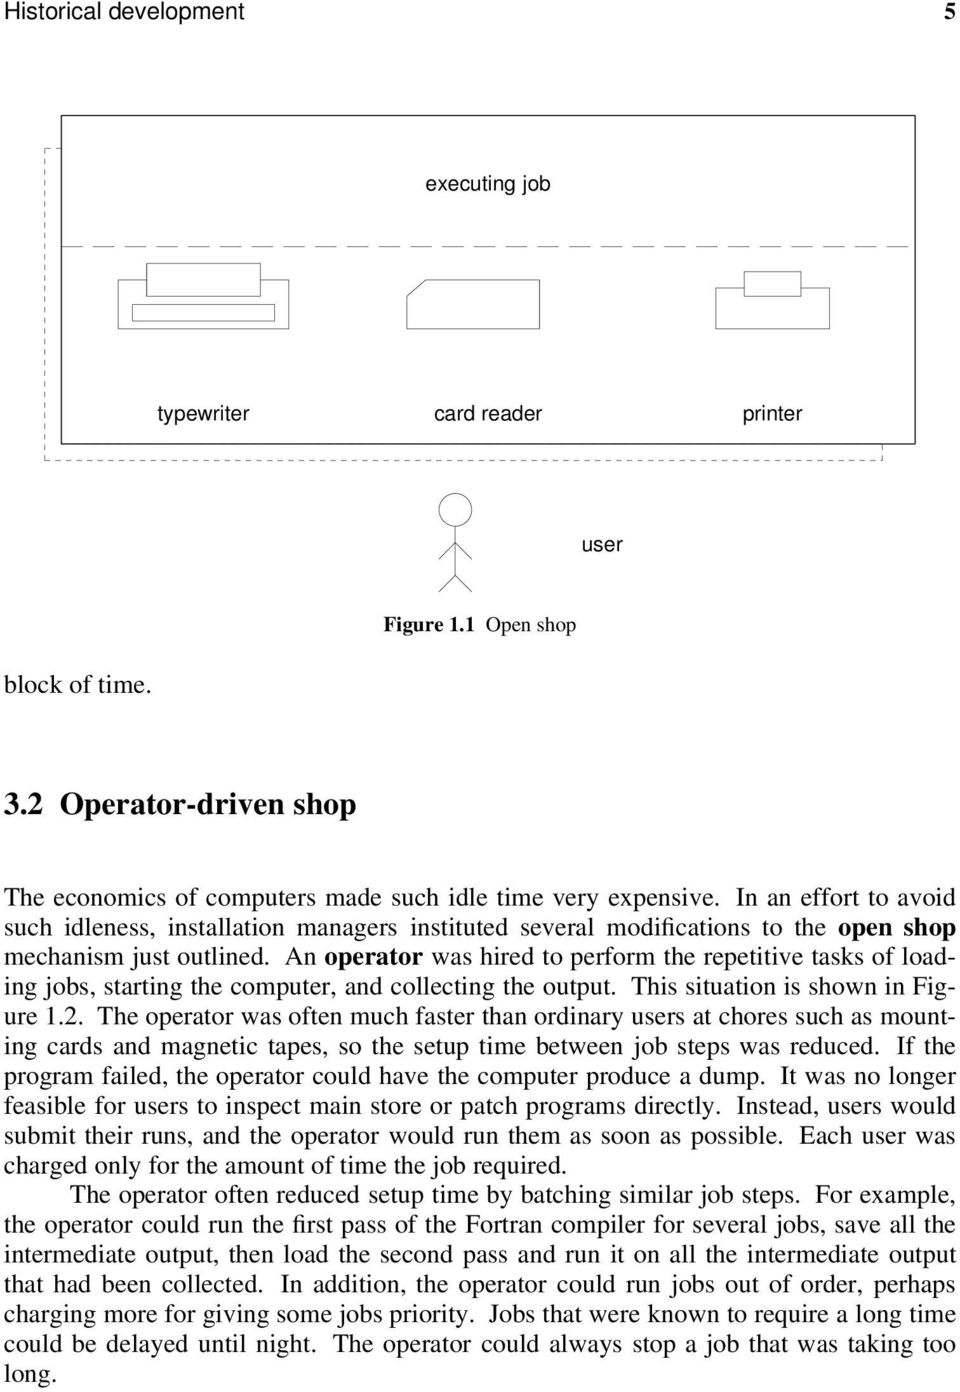 An operator was hired to perform the repetitive tasks of loading jobs, starting the computer, and collecting the output. This situation is shown in Figure 1.2.